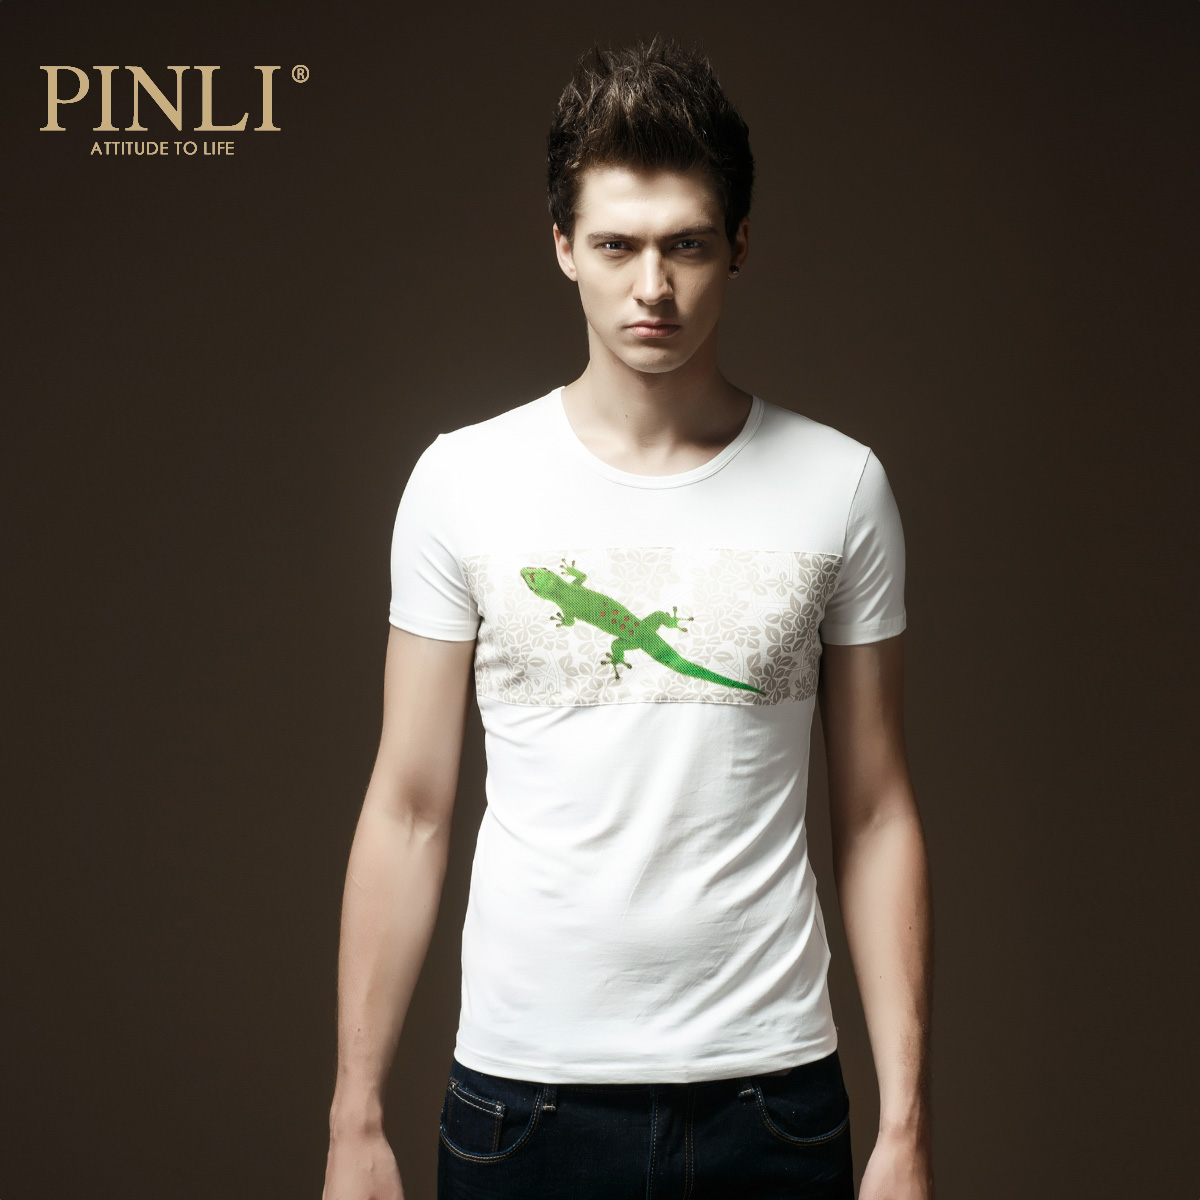 Pinli products stand 2015 new spring and summer men's fashion slim round neck short sleeve t-shirt men bottoming shirt tide 3788